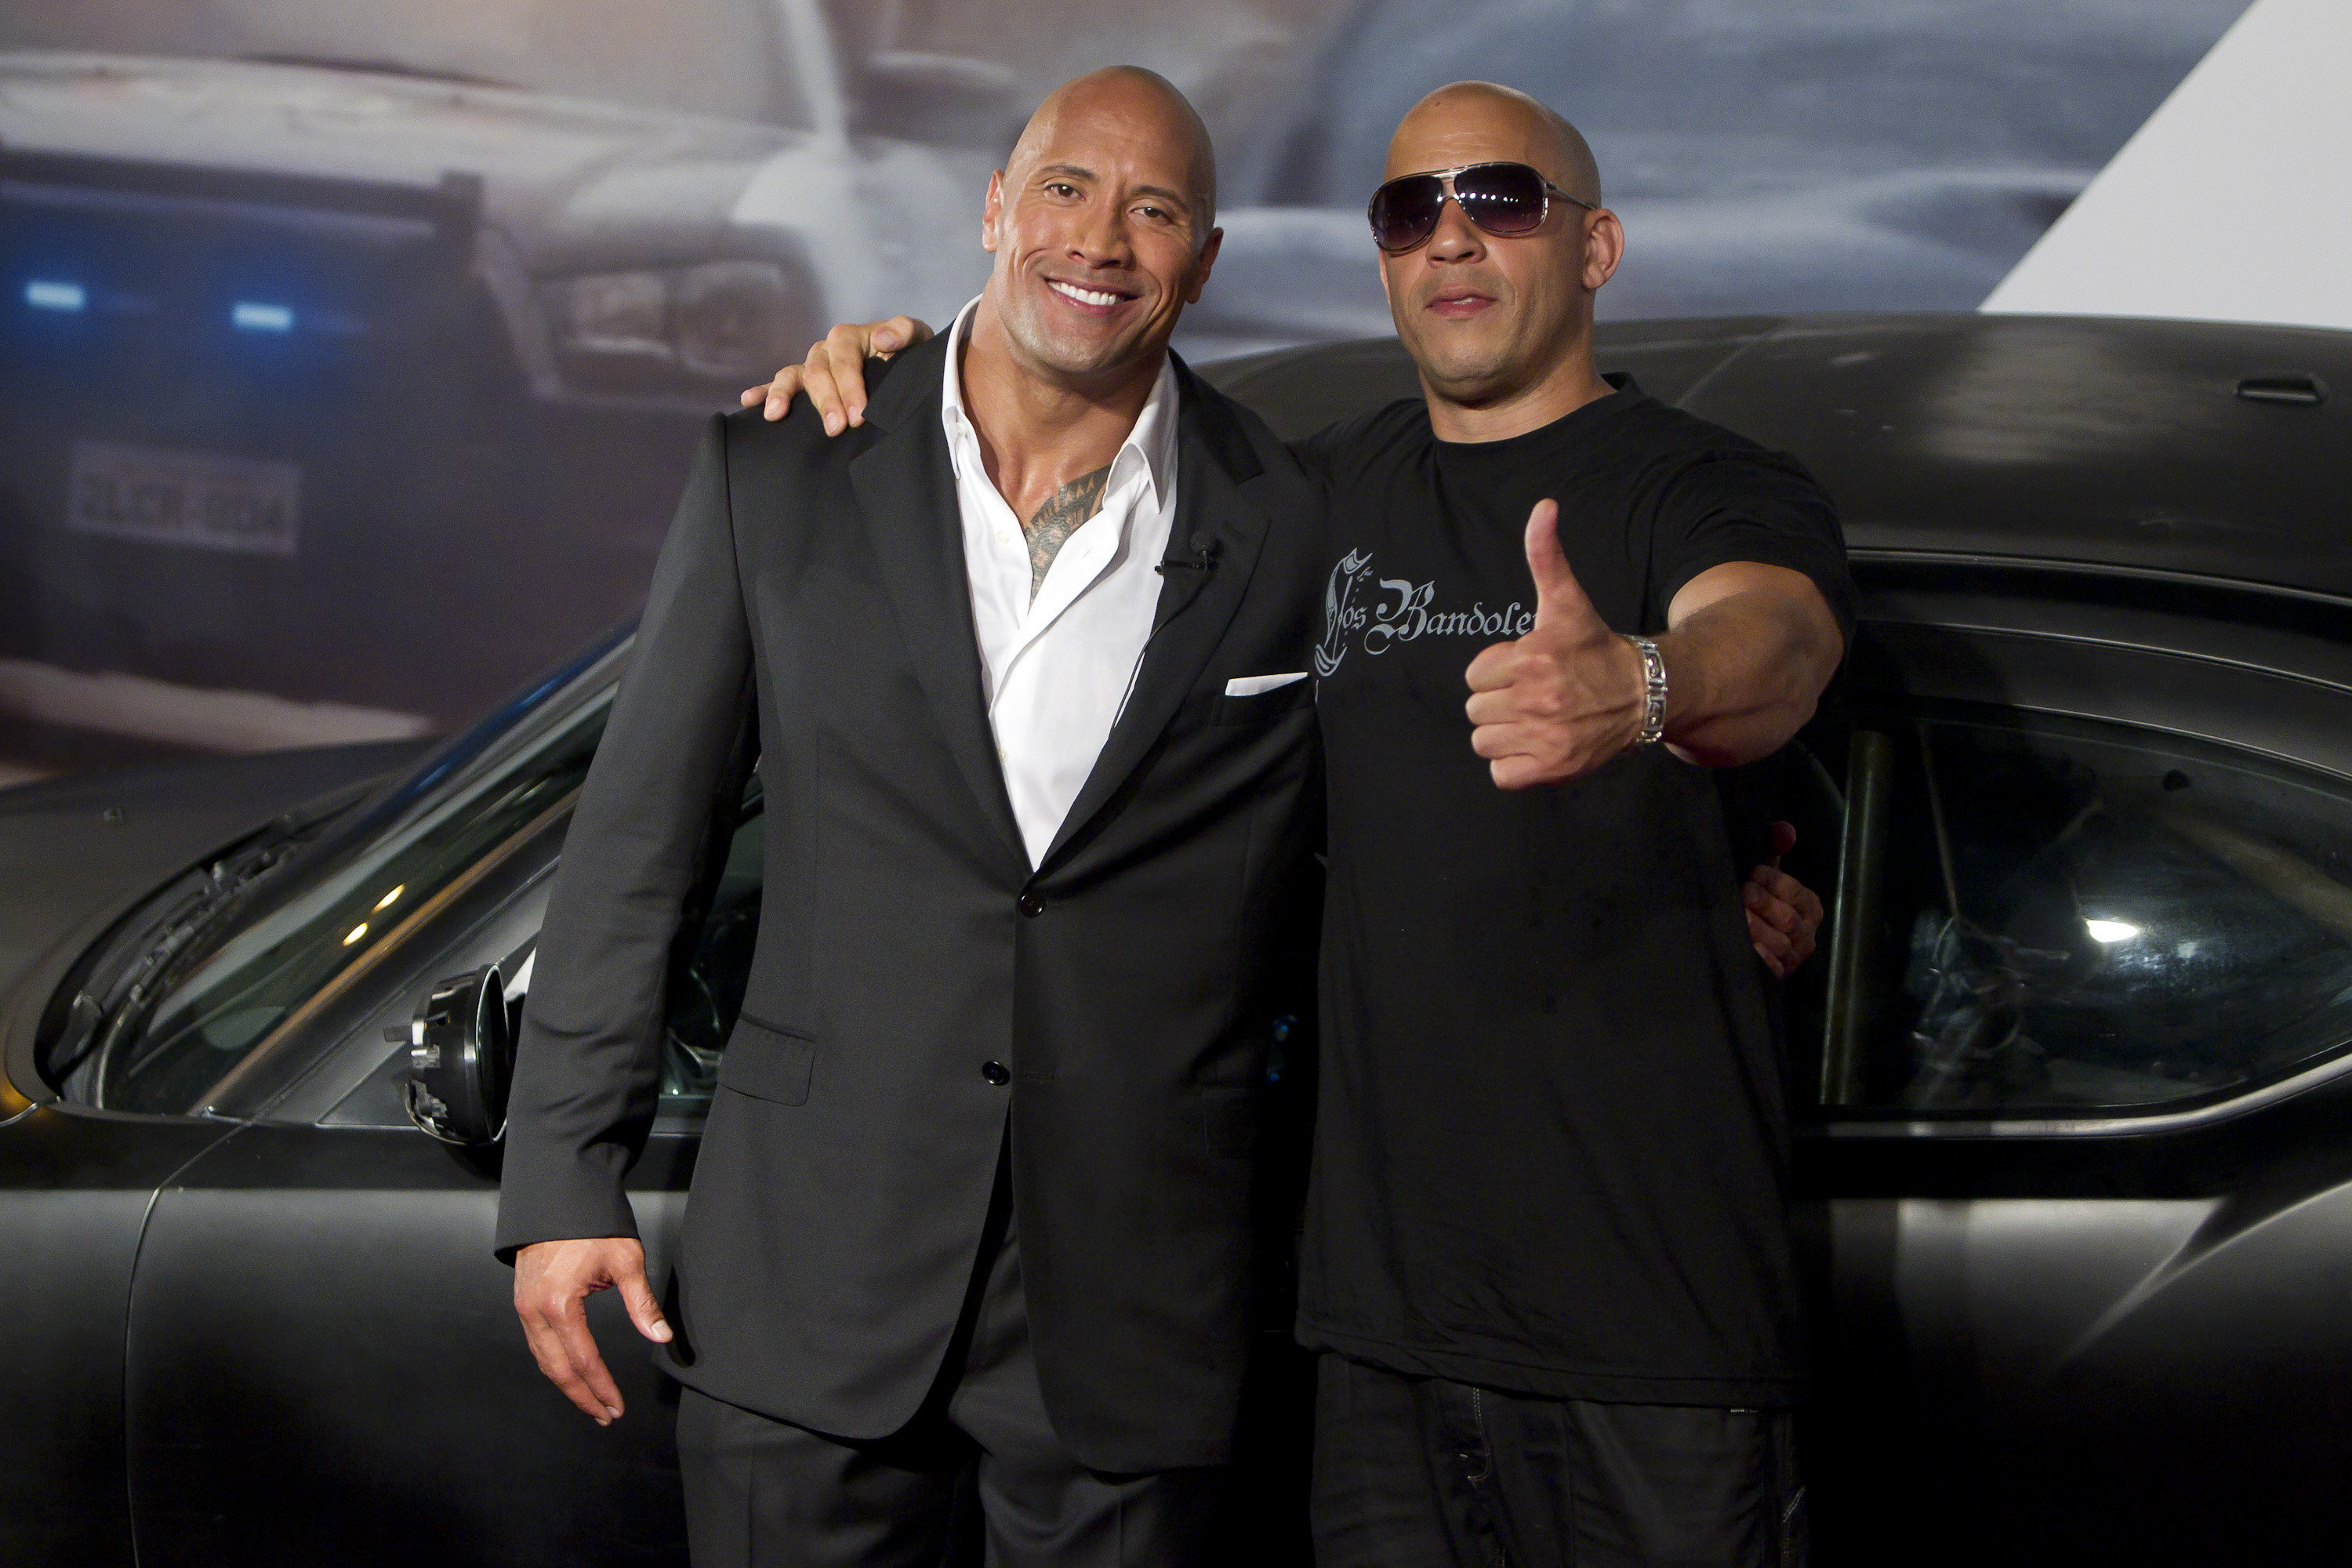 Is the feud between Vin Diesel and the Rock a publicity stunt?